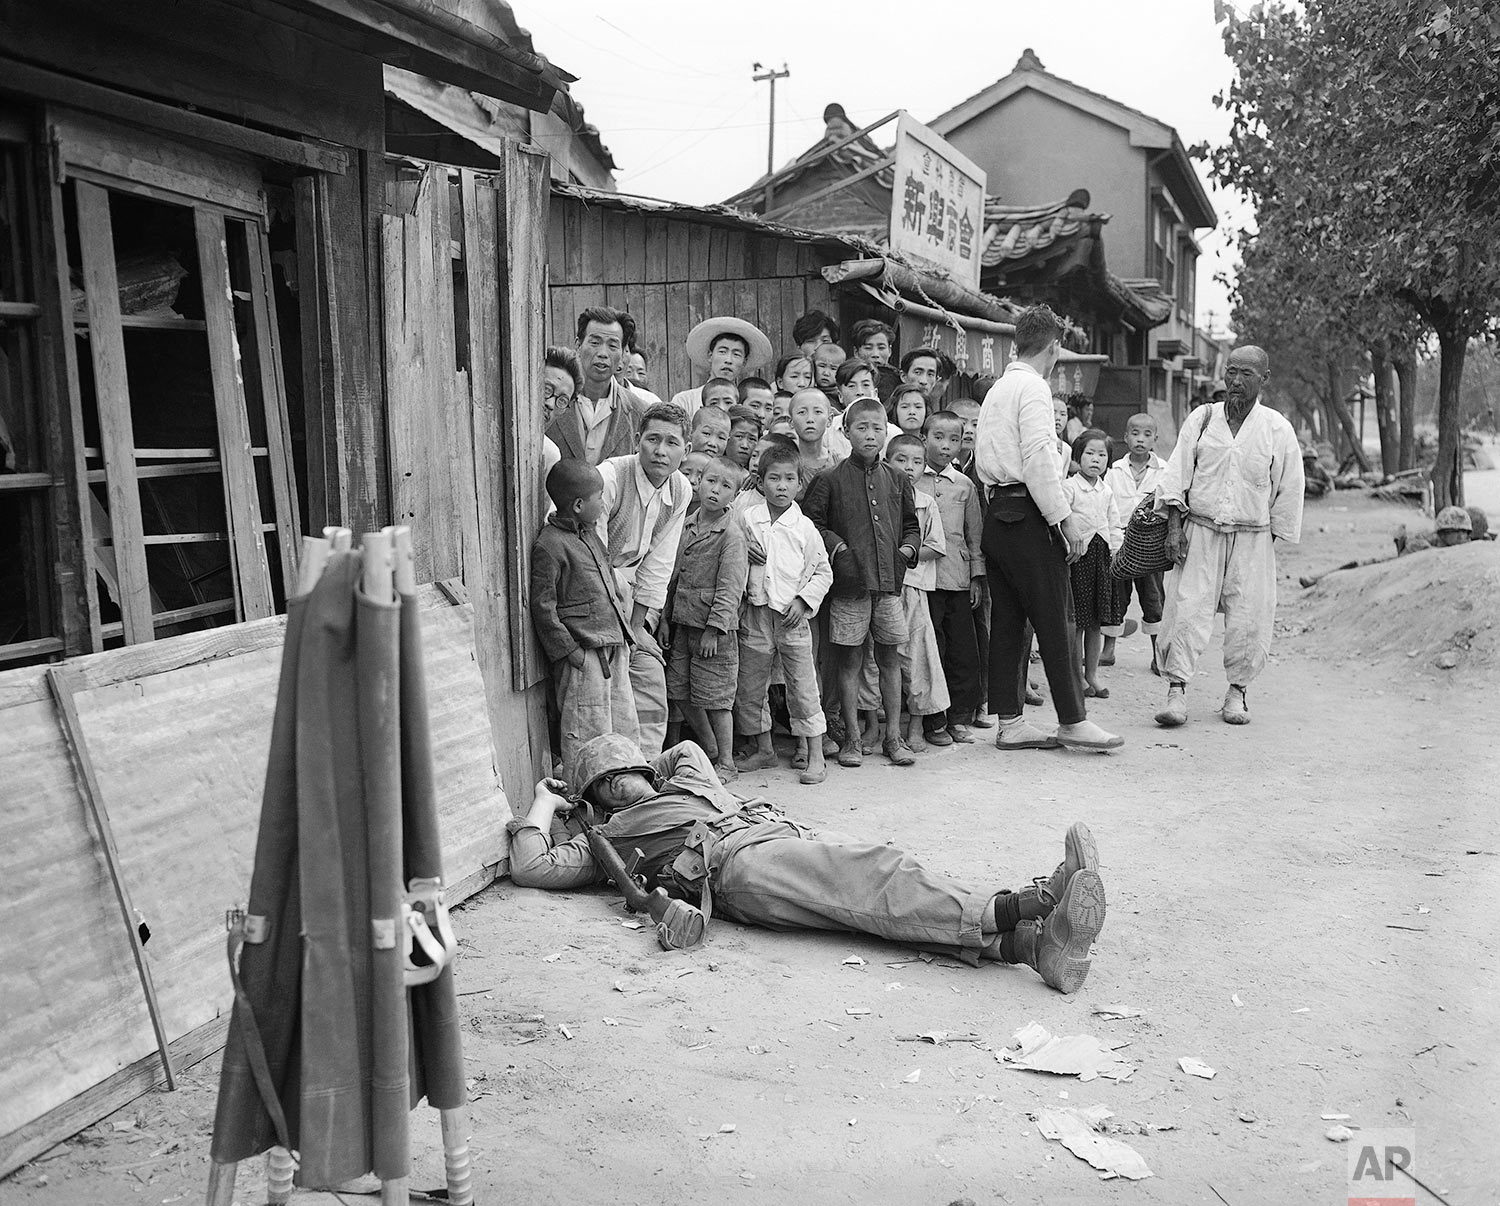 Fatigue, not an enemy bullet, stopped this American marine who catches 40 winks on a Seoul Street unperturbed by his audience of young and old residents in Seoul, Sept. 28, 1950. (AP Photo/Max Desfor)